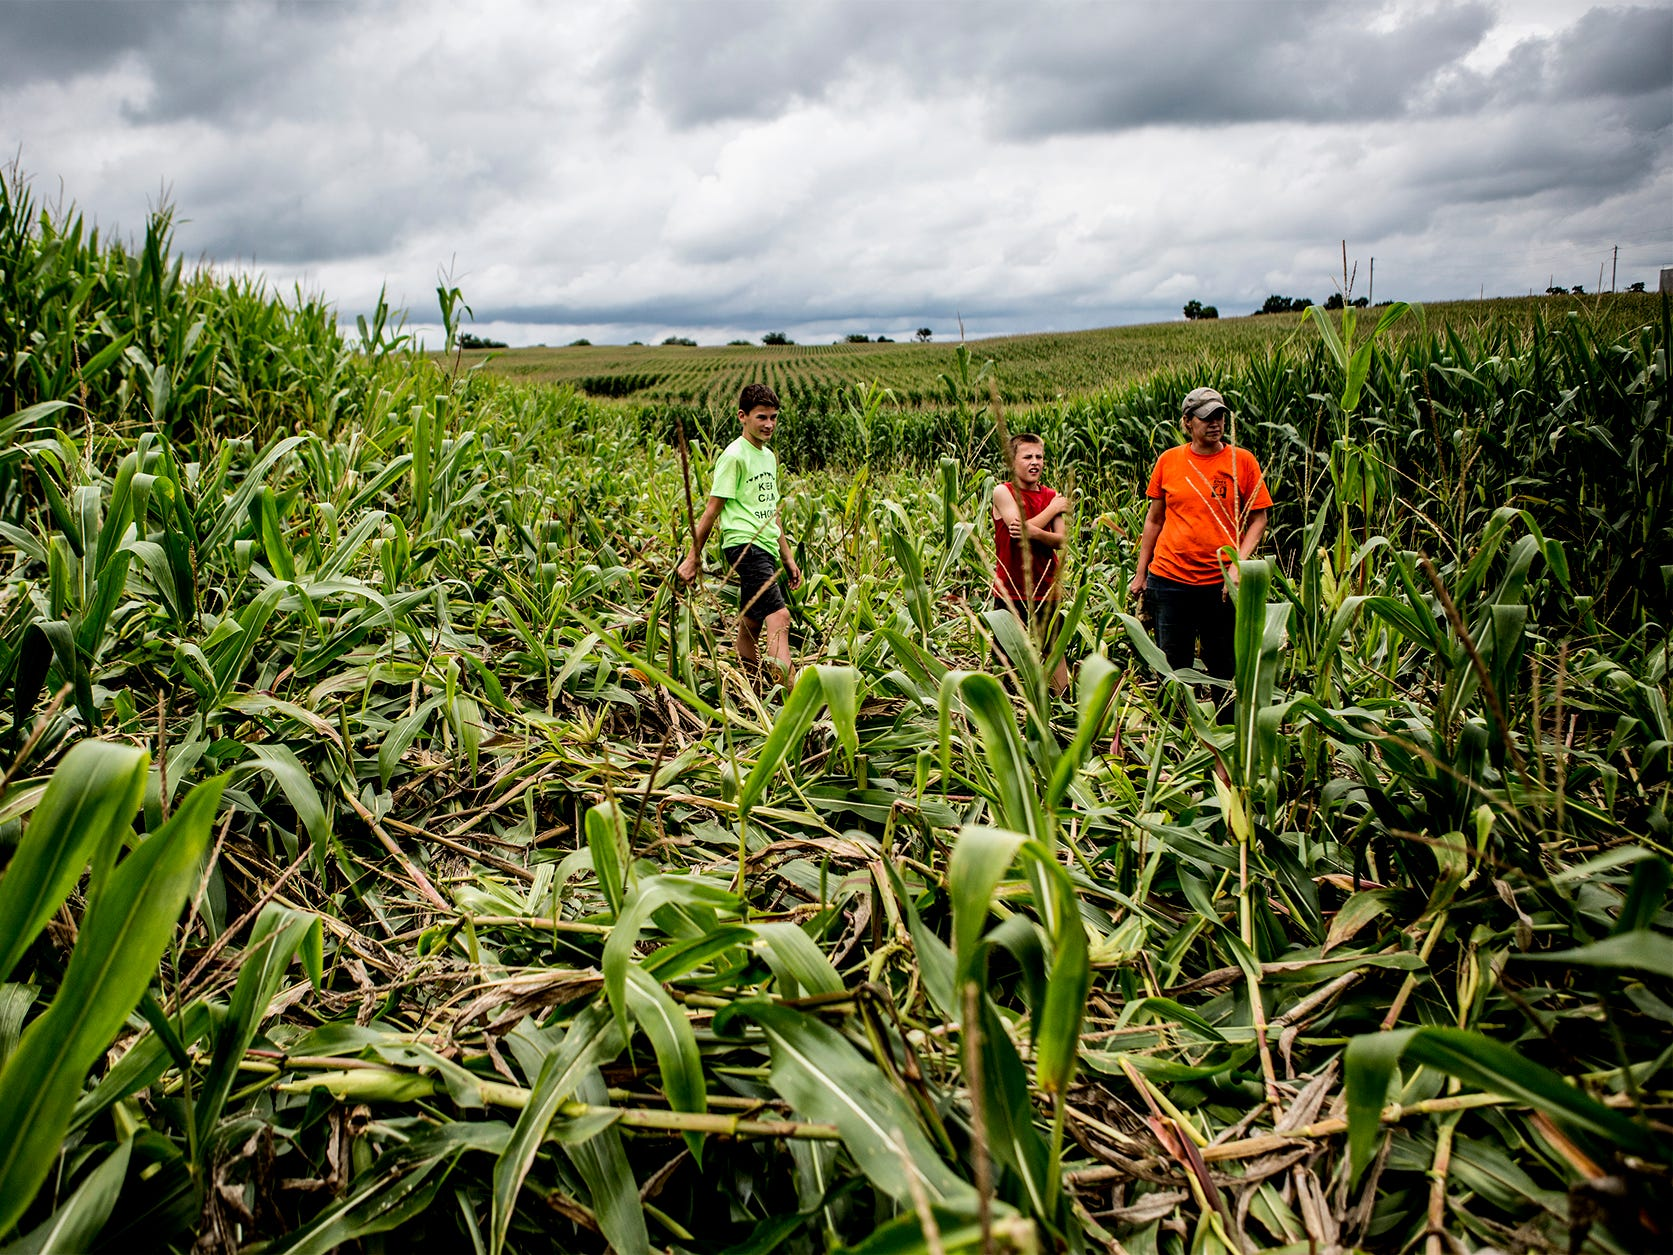 Mamie, Arthur and Bryce survey the damage to one of their corn fields after a raccoon damaged a large portion of their crop in that field.